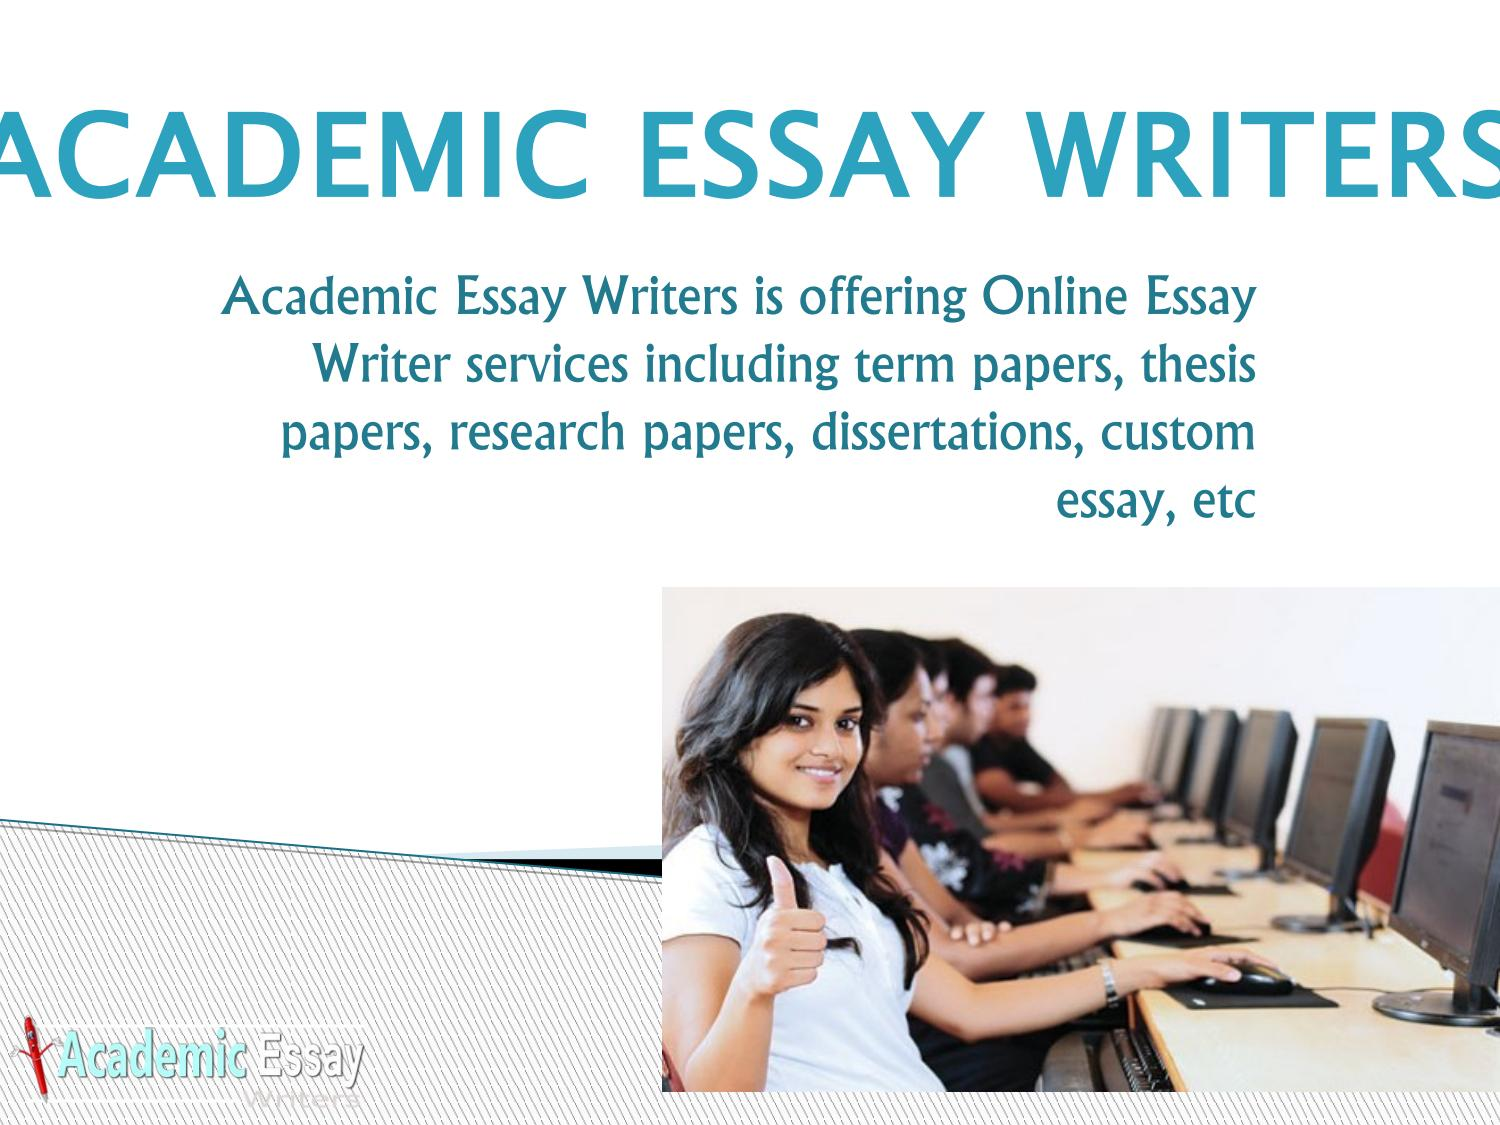 Writers services